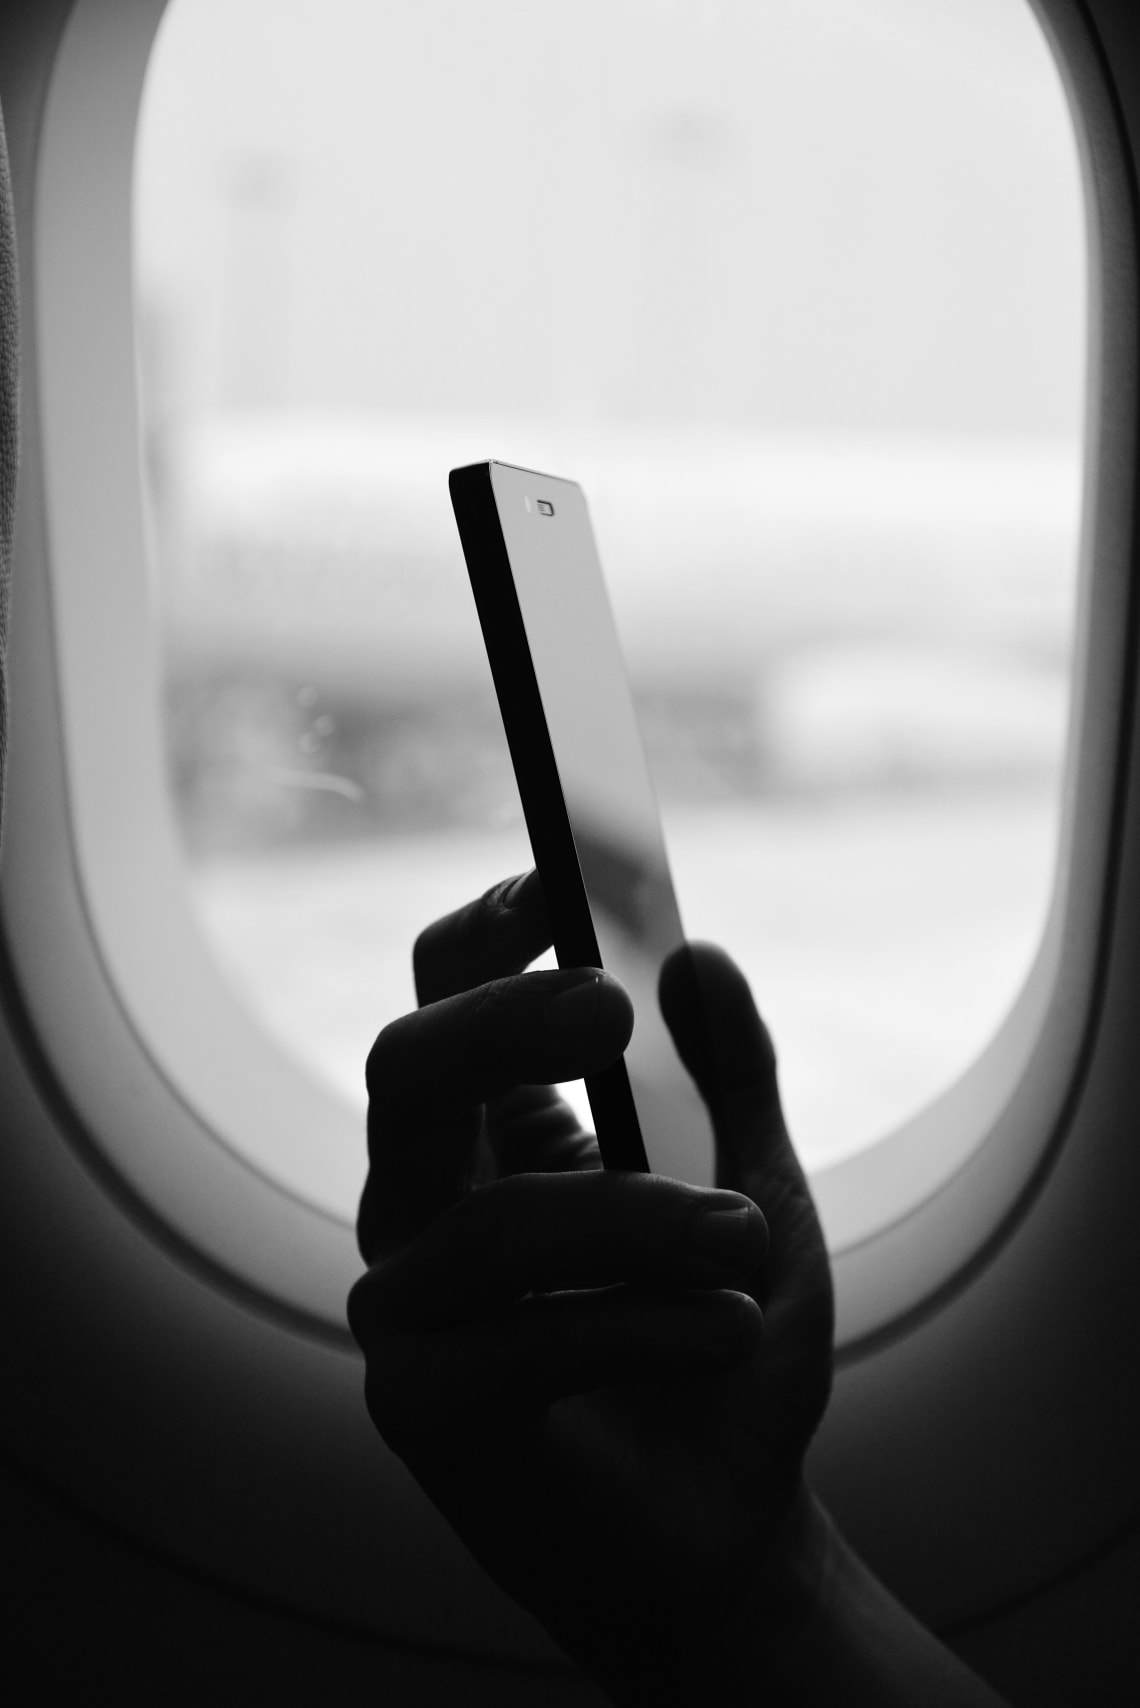 Smartphone in front of airplane window